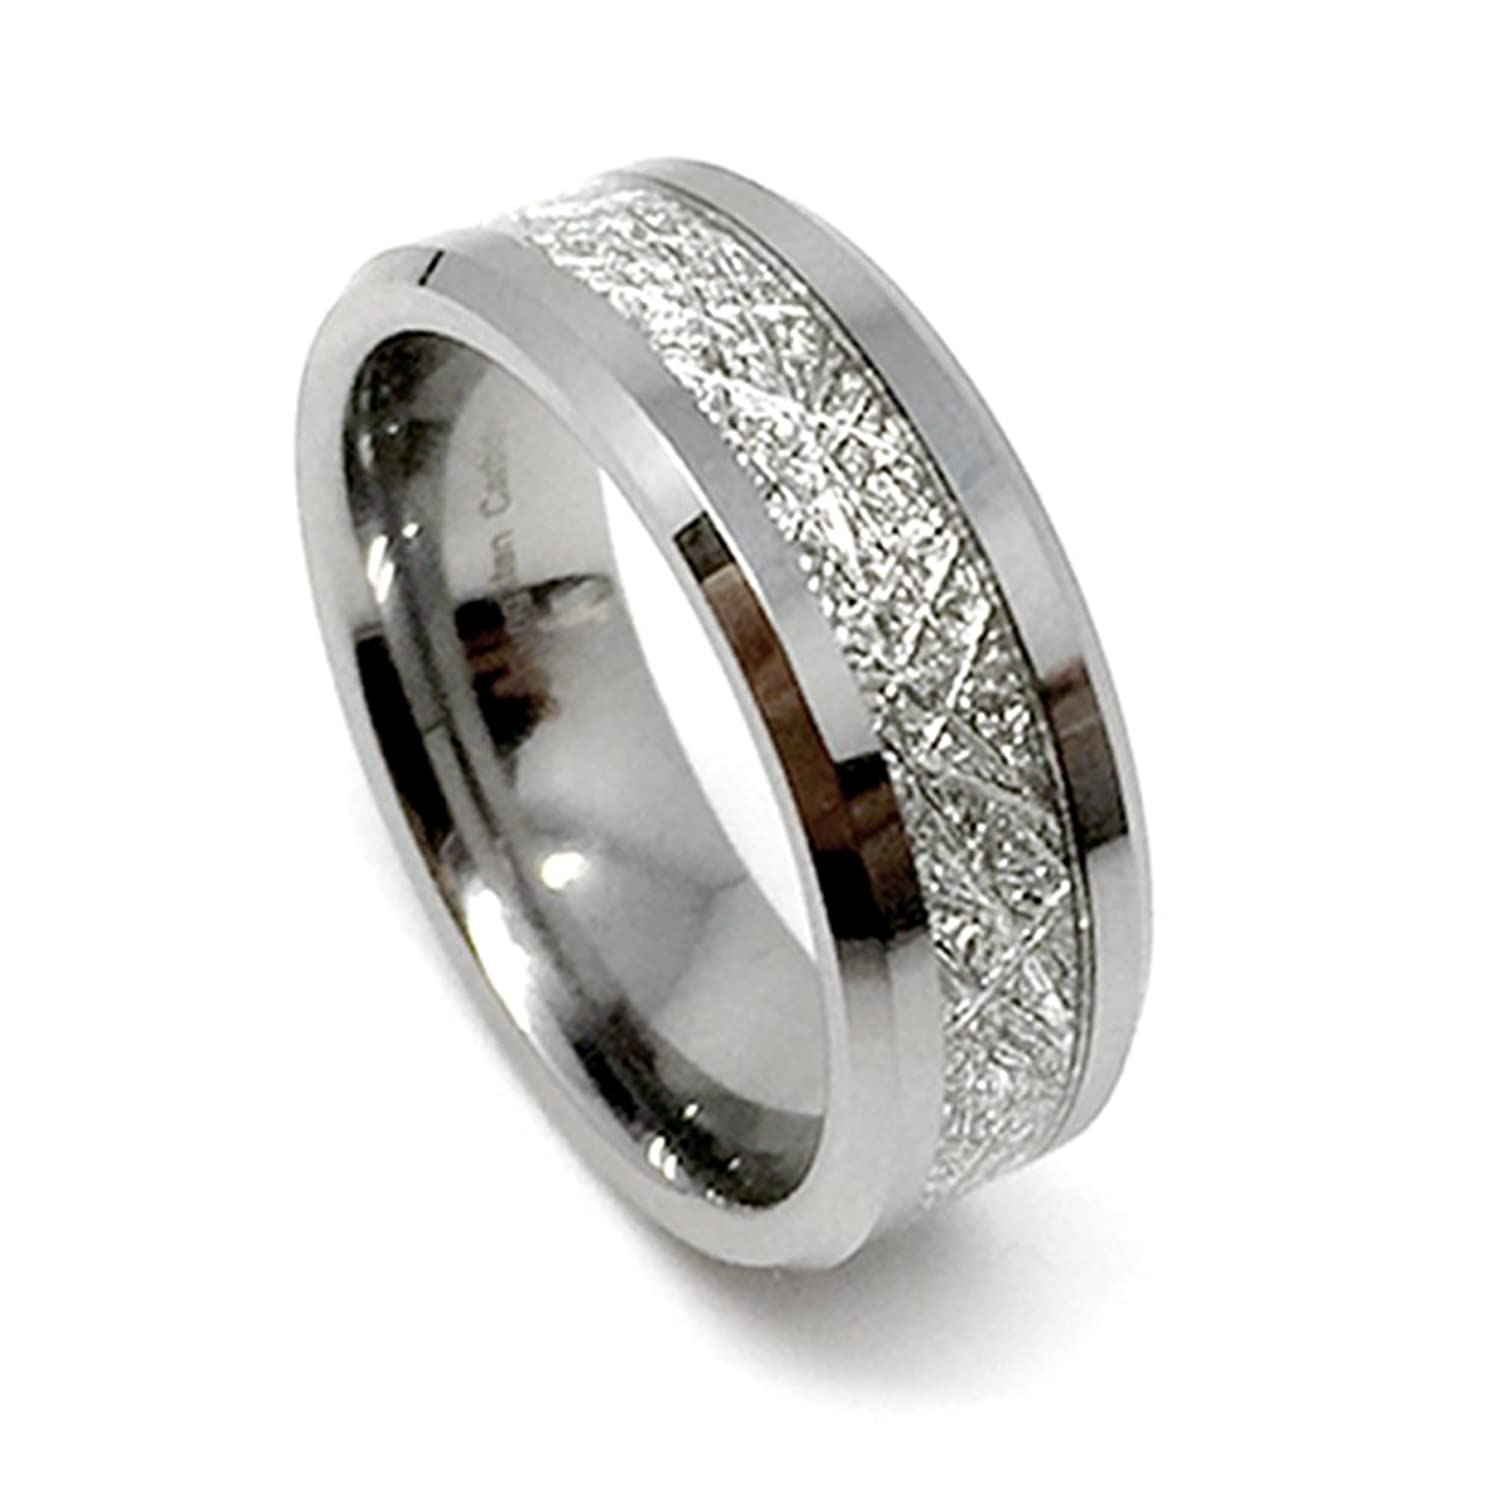 8mm tungsten carbide meteorite mens wedding band ringamazoncom - Meteorite Wedding Ring